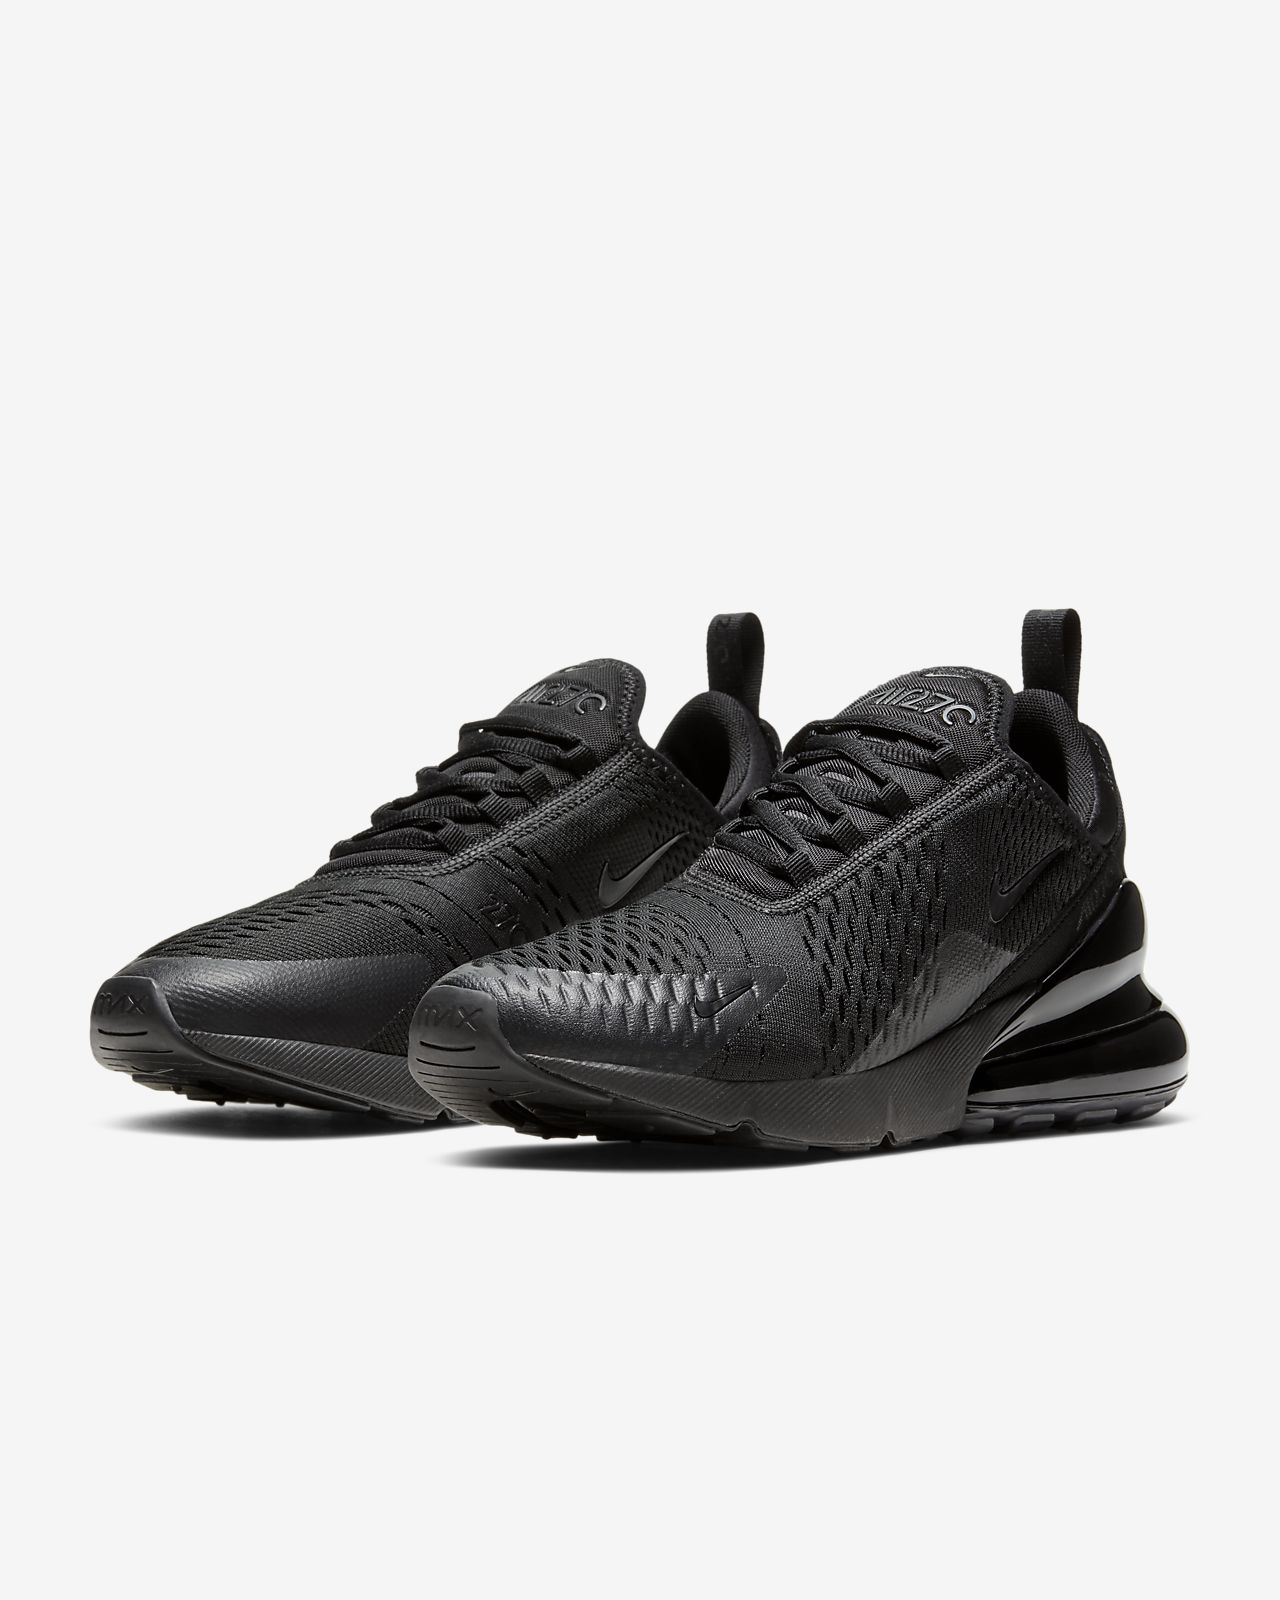 956289d4836f7 Nike Air Max 270 Men s Shoe. Nike.com AU